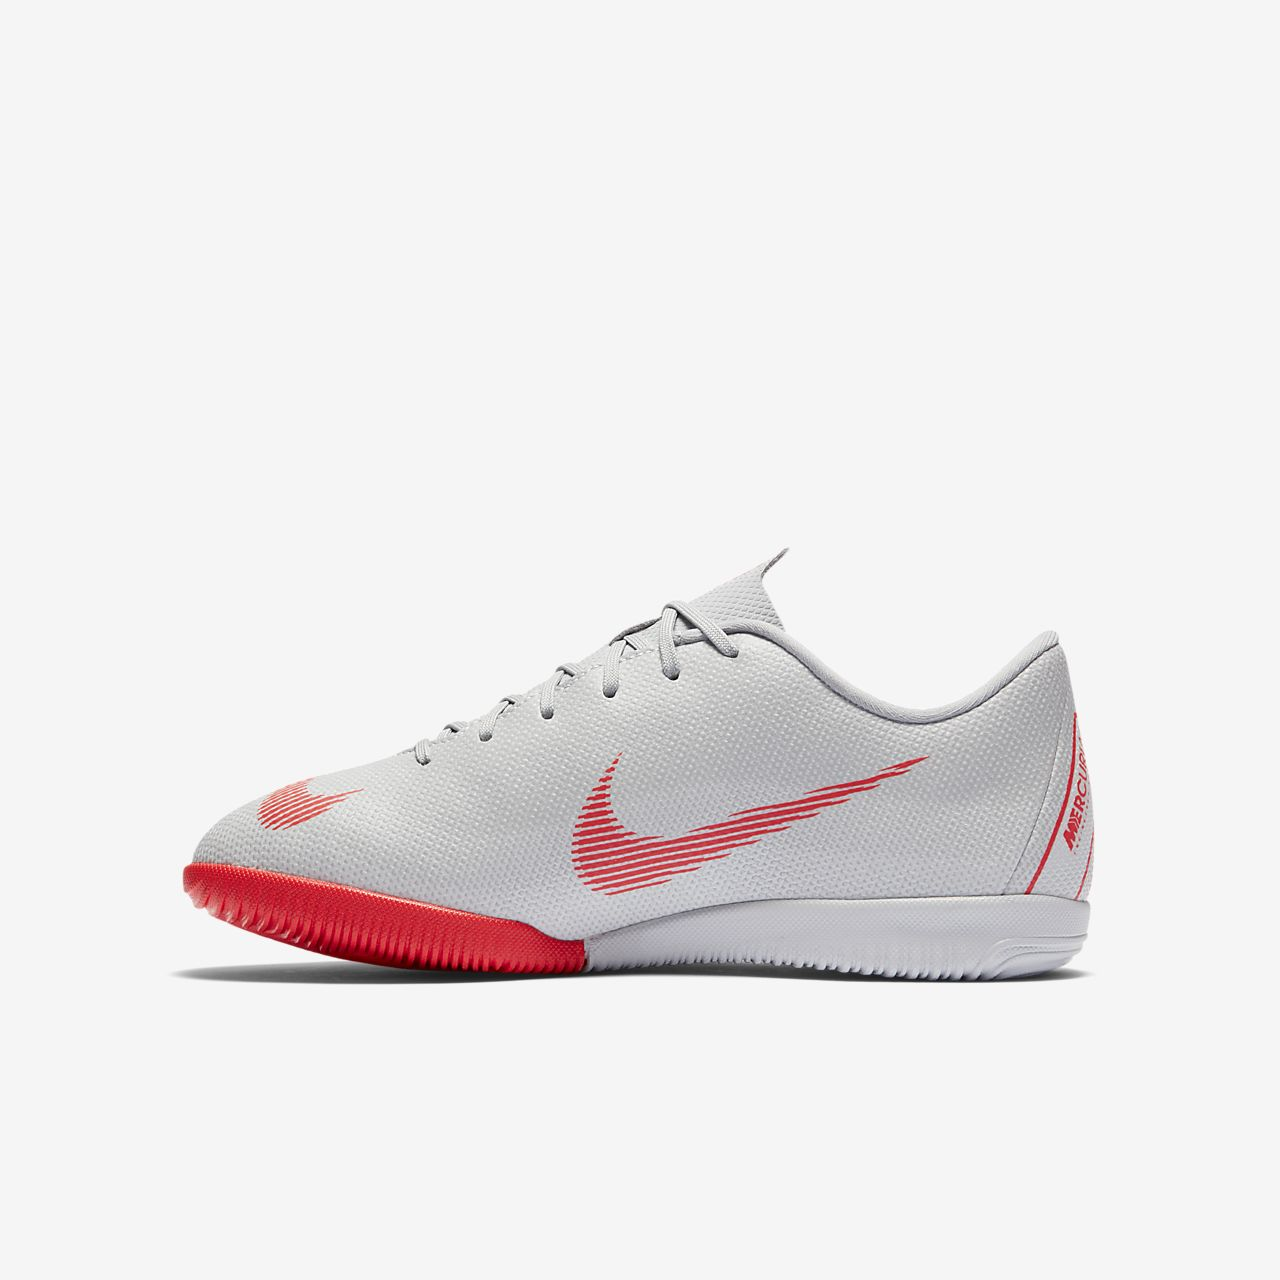 Ghete Fotbal Nike Jr. MercurialX Vapor XII Academy Just Do It IC Fete Gri/Platină/Metal Argintii/Ros